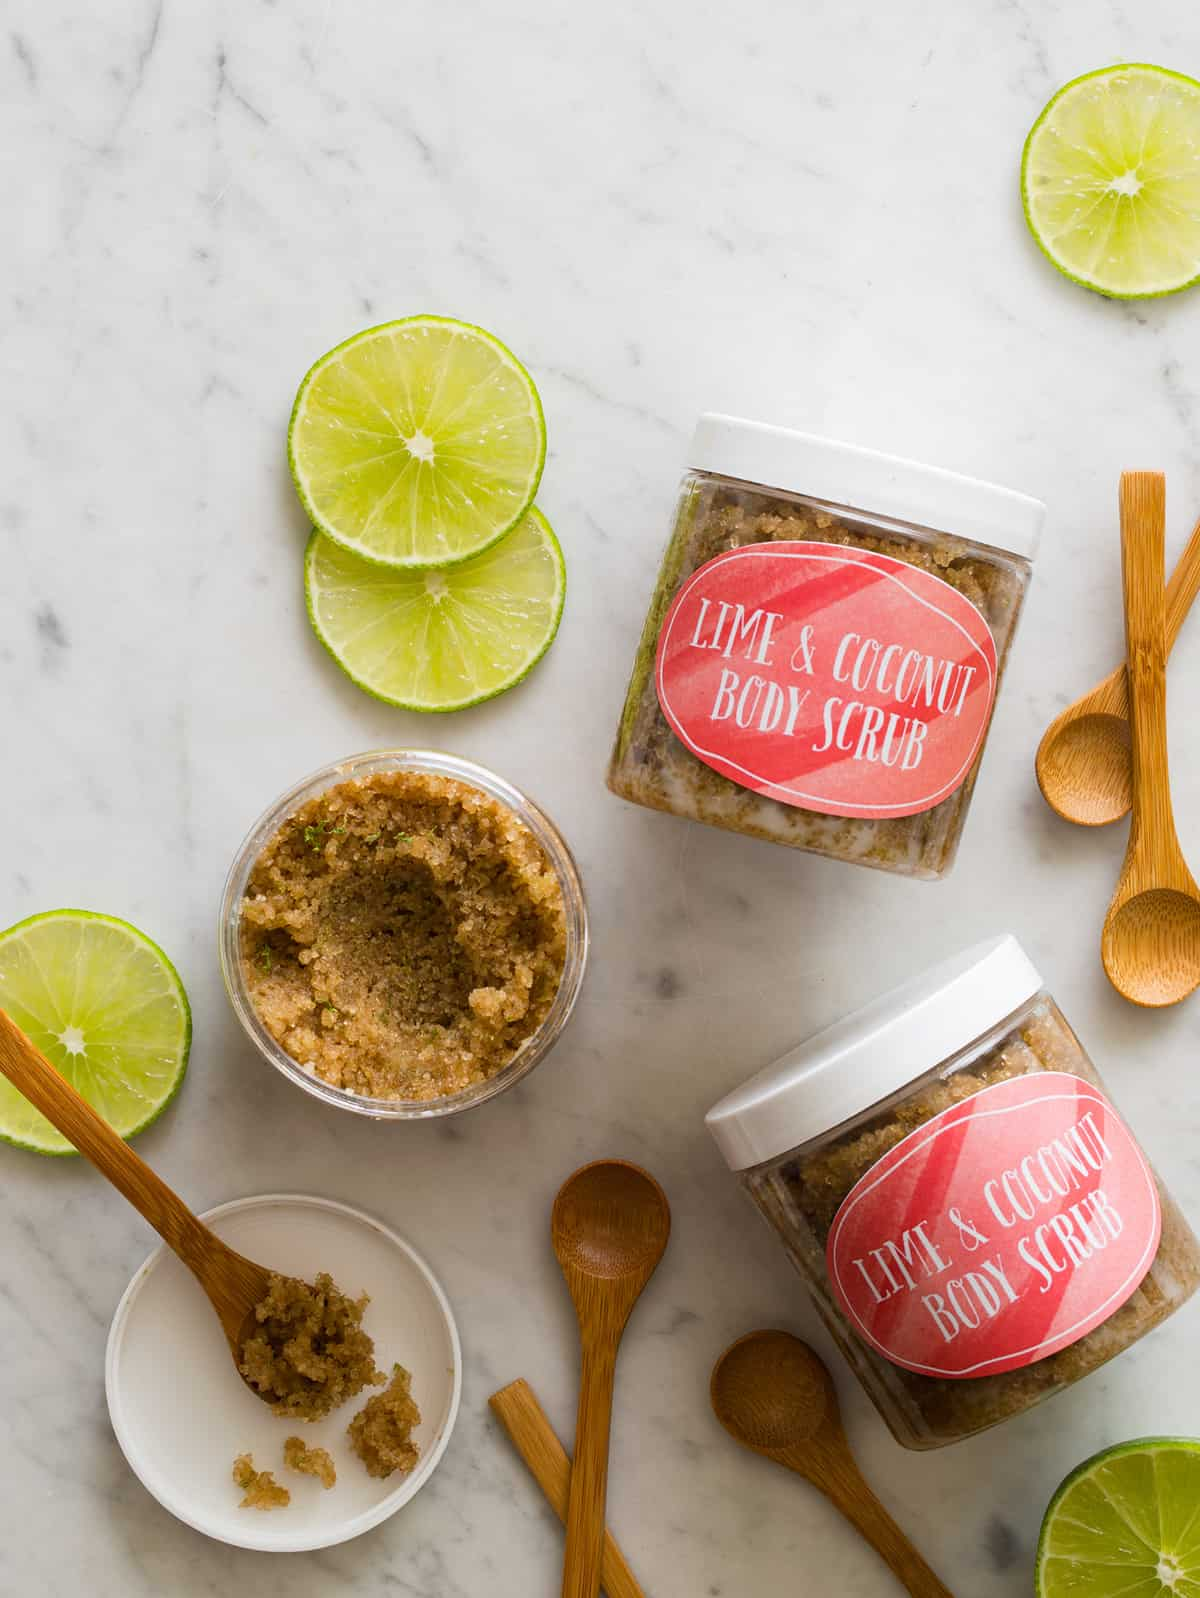 Lime and Coconut Body Scrub